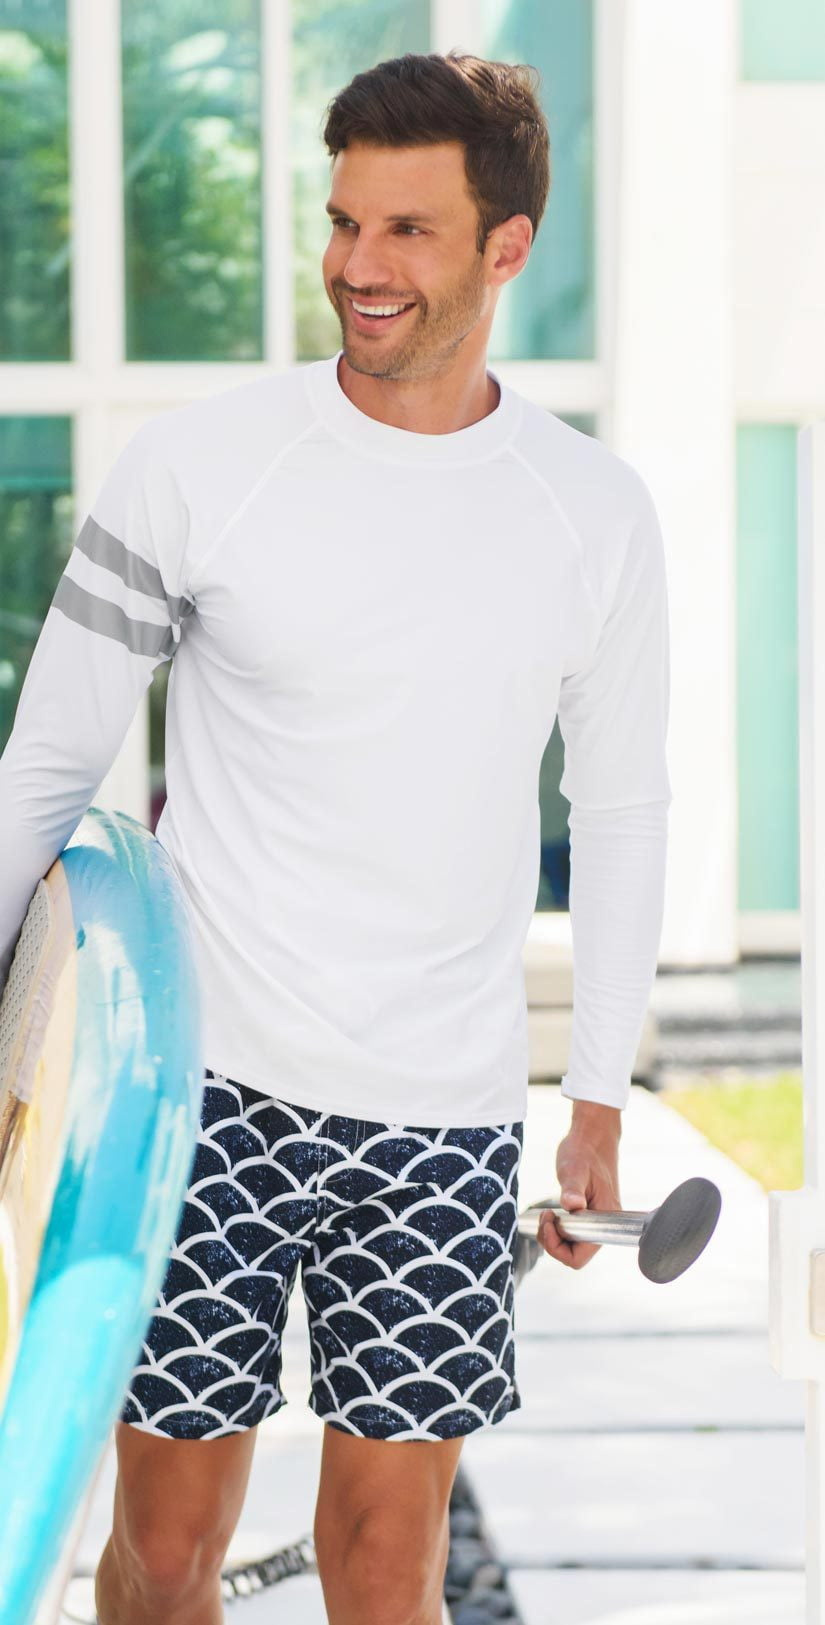 Snapperrock Men's Arm Band Rashguard Top in White M20052L: